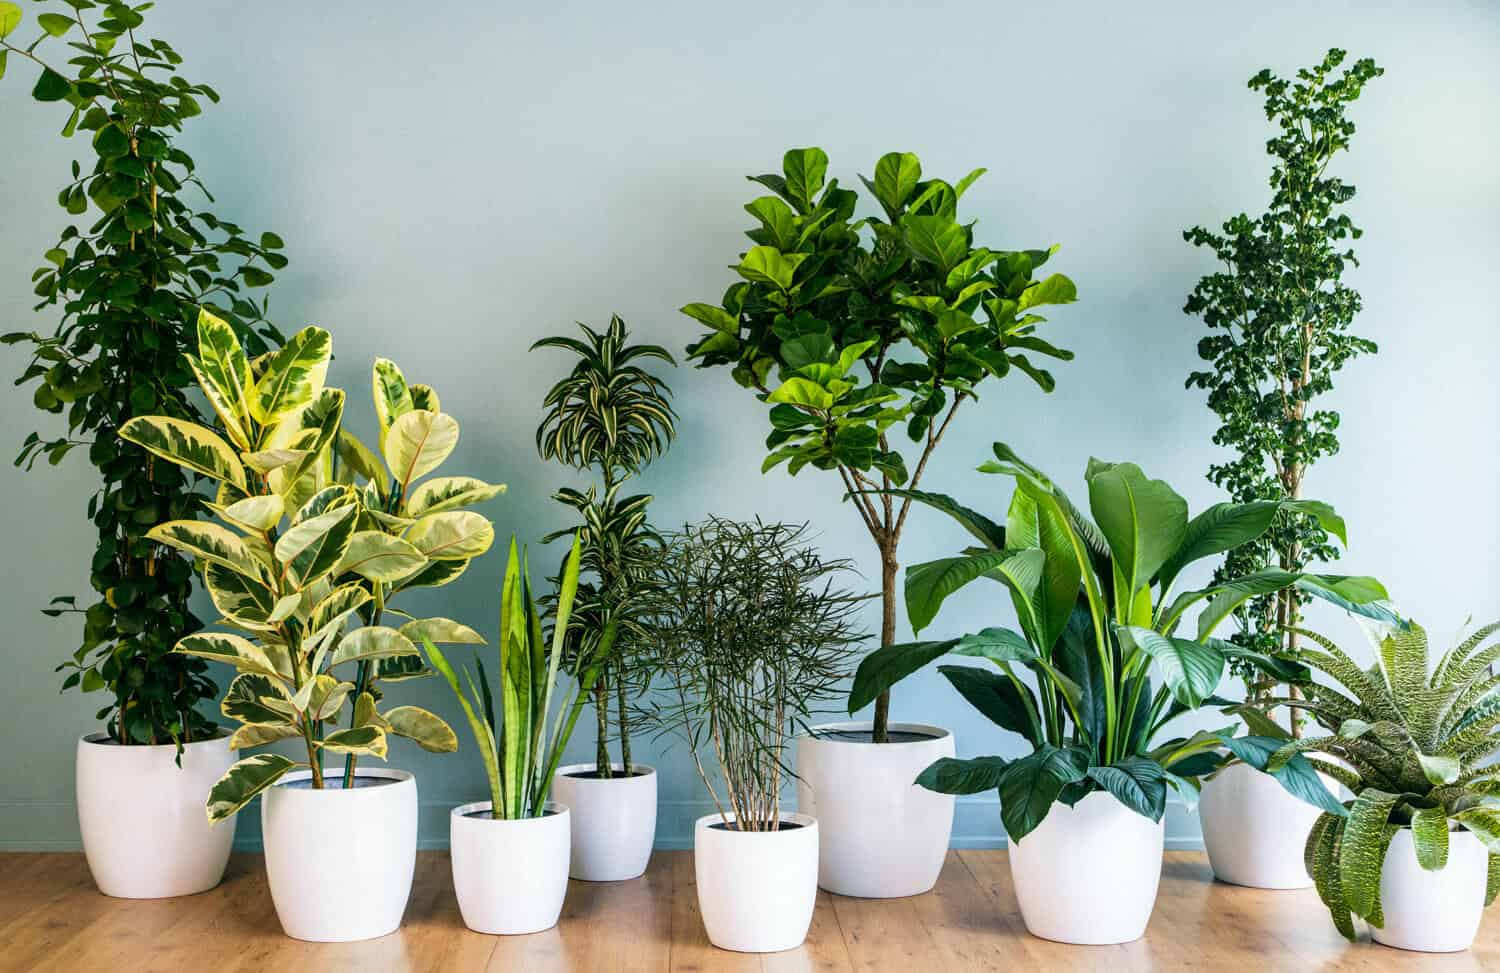 31 Low Light Houseplants That You Shouldn't Miss Out